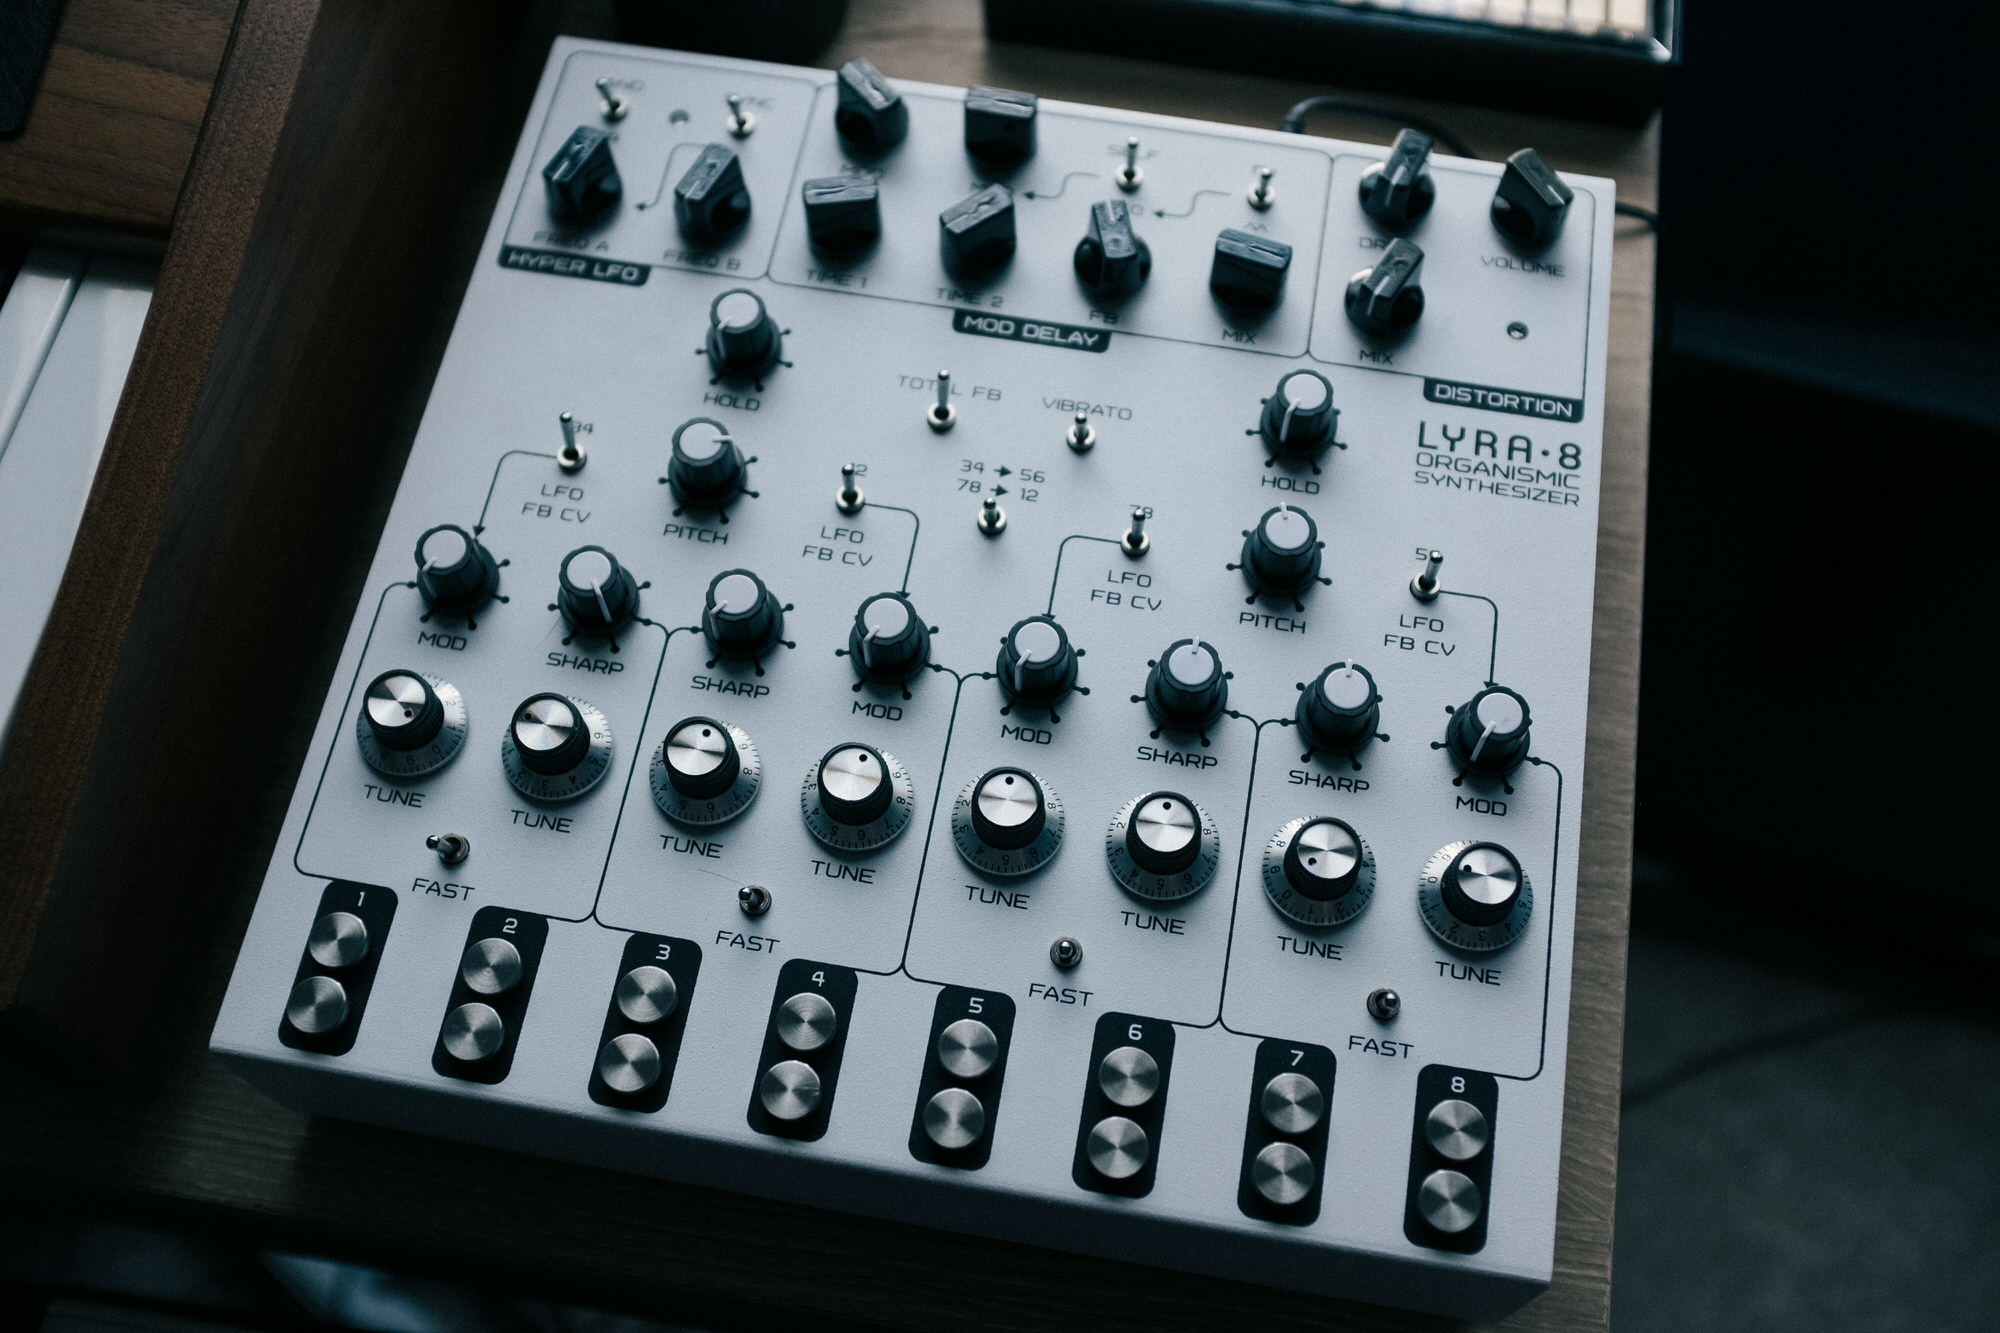 An image of the Soma Synths Lyra 8.